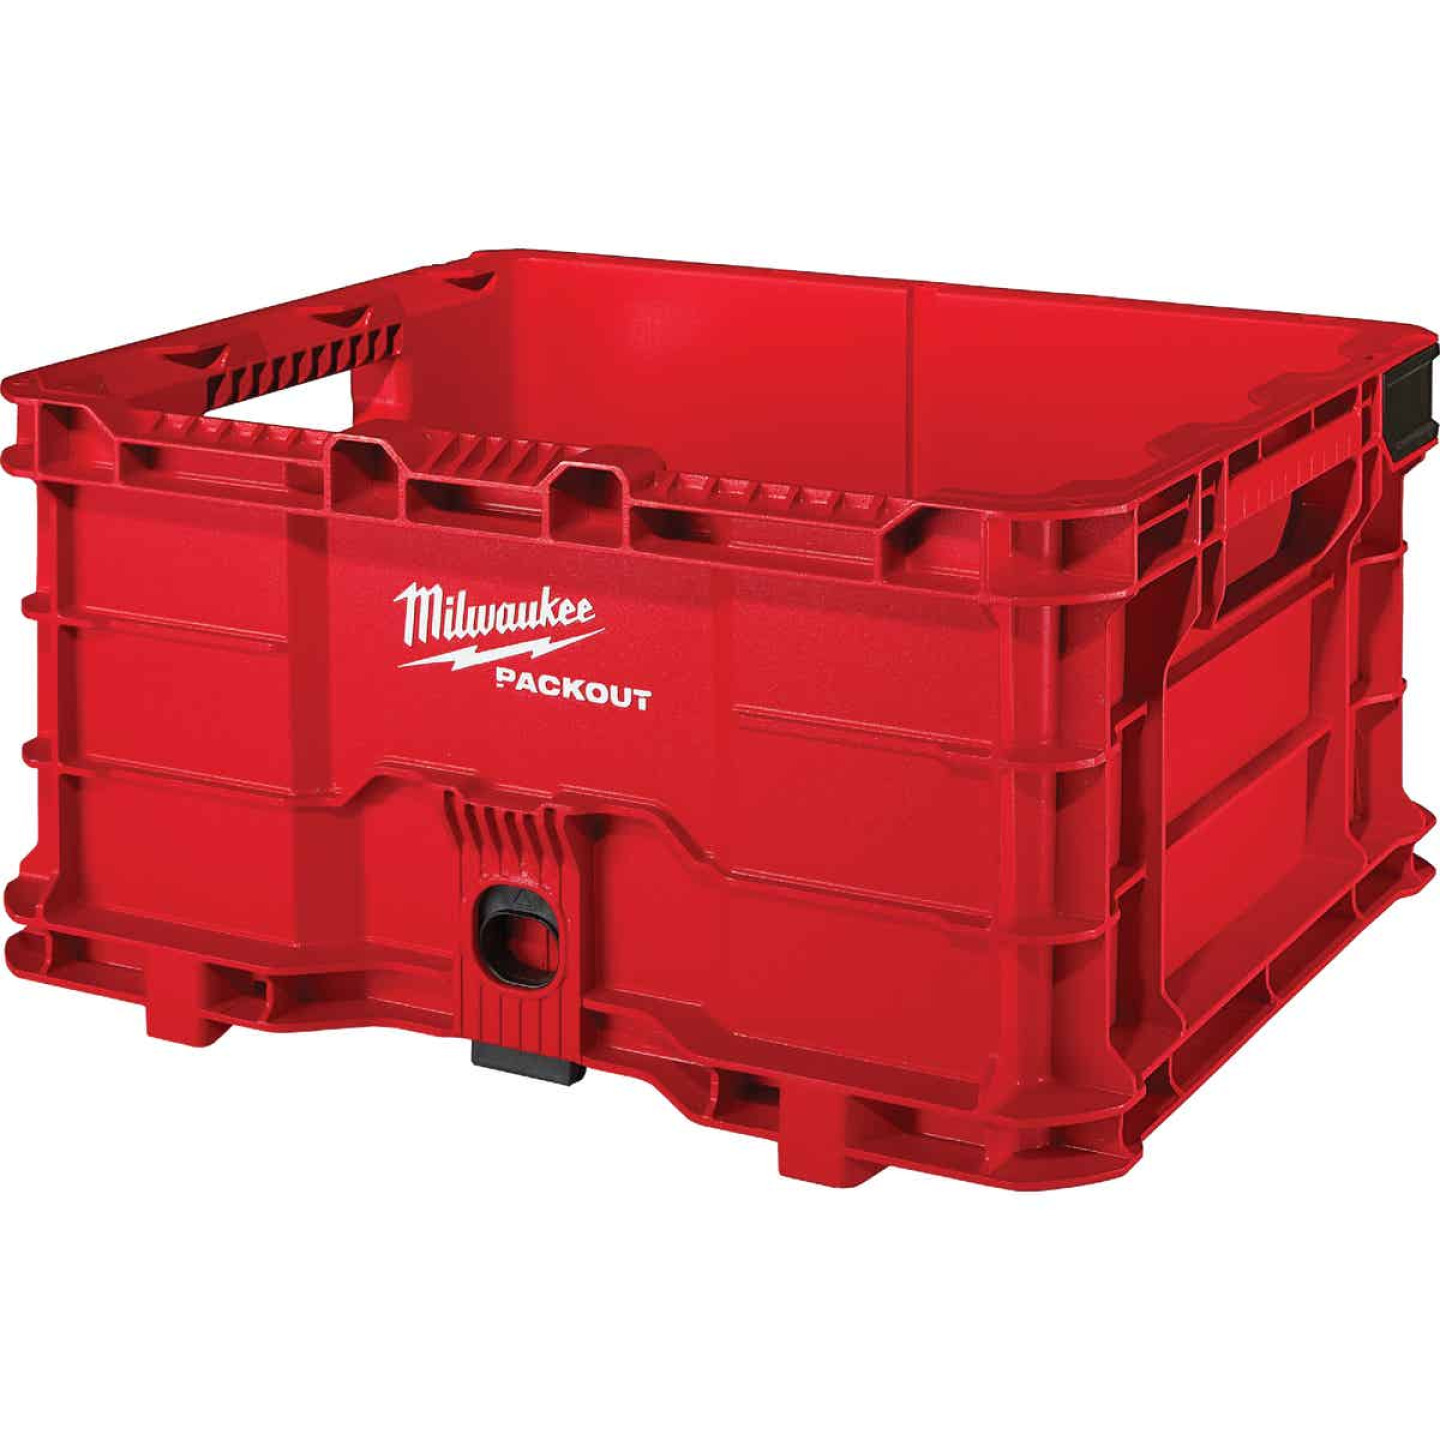 Milwaukee PACKOUT 50 Lb. Red Storage Tote Image 1